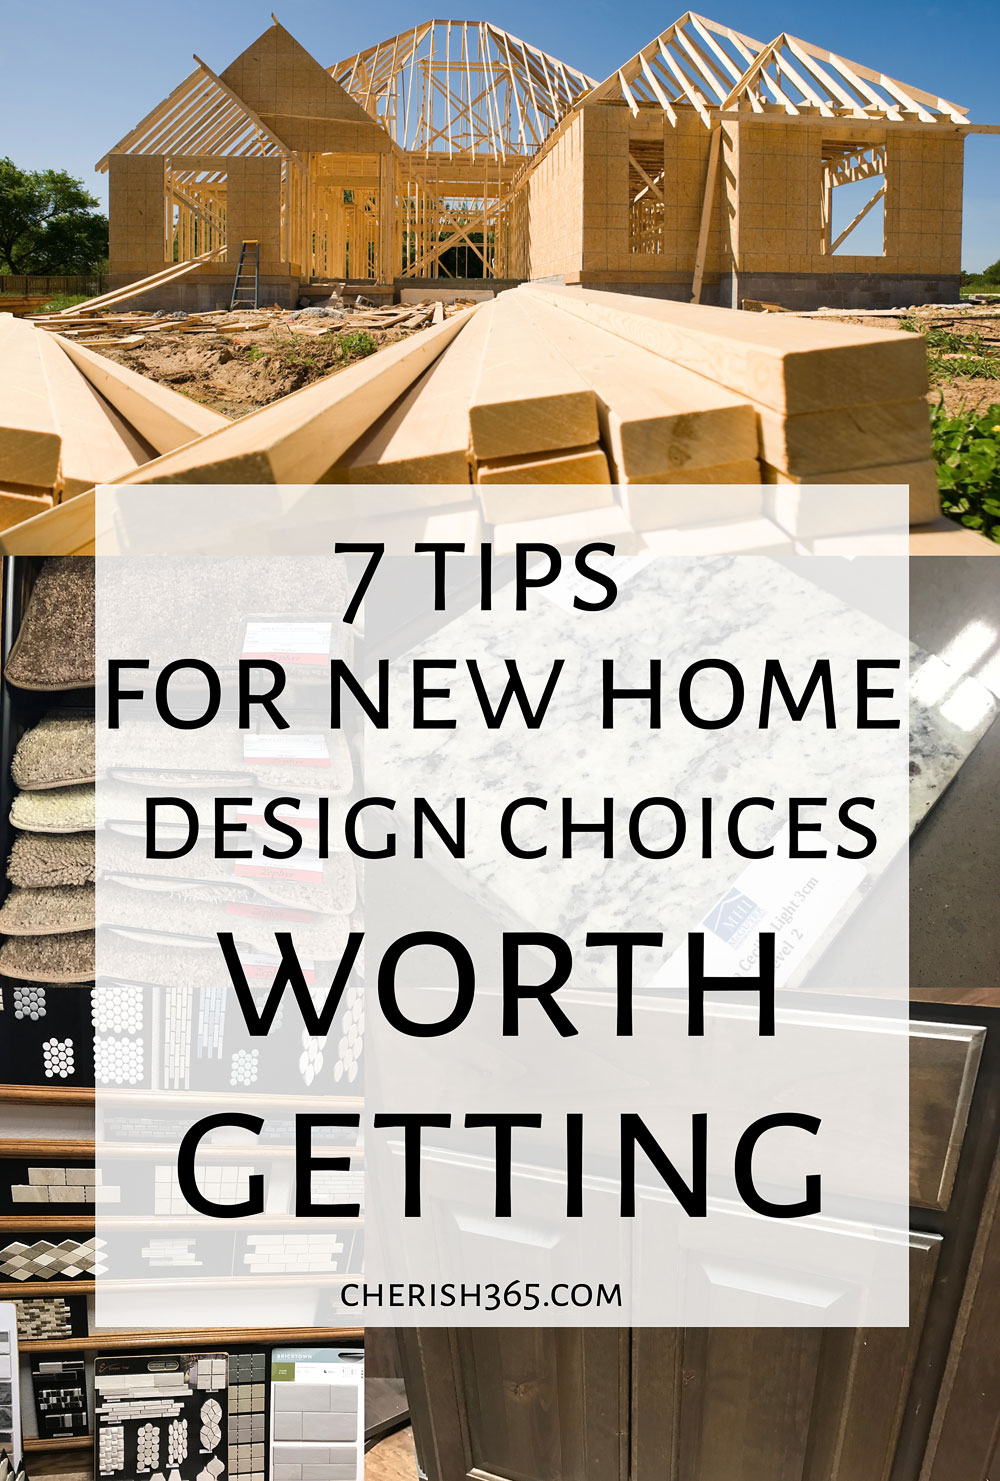 7 Cheap Home Design Tips for Your Home Office